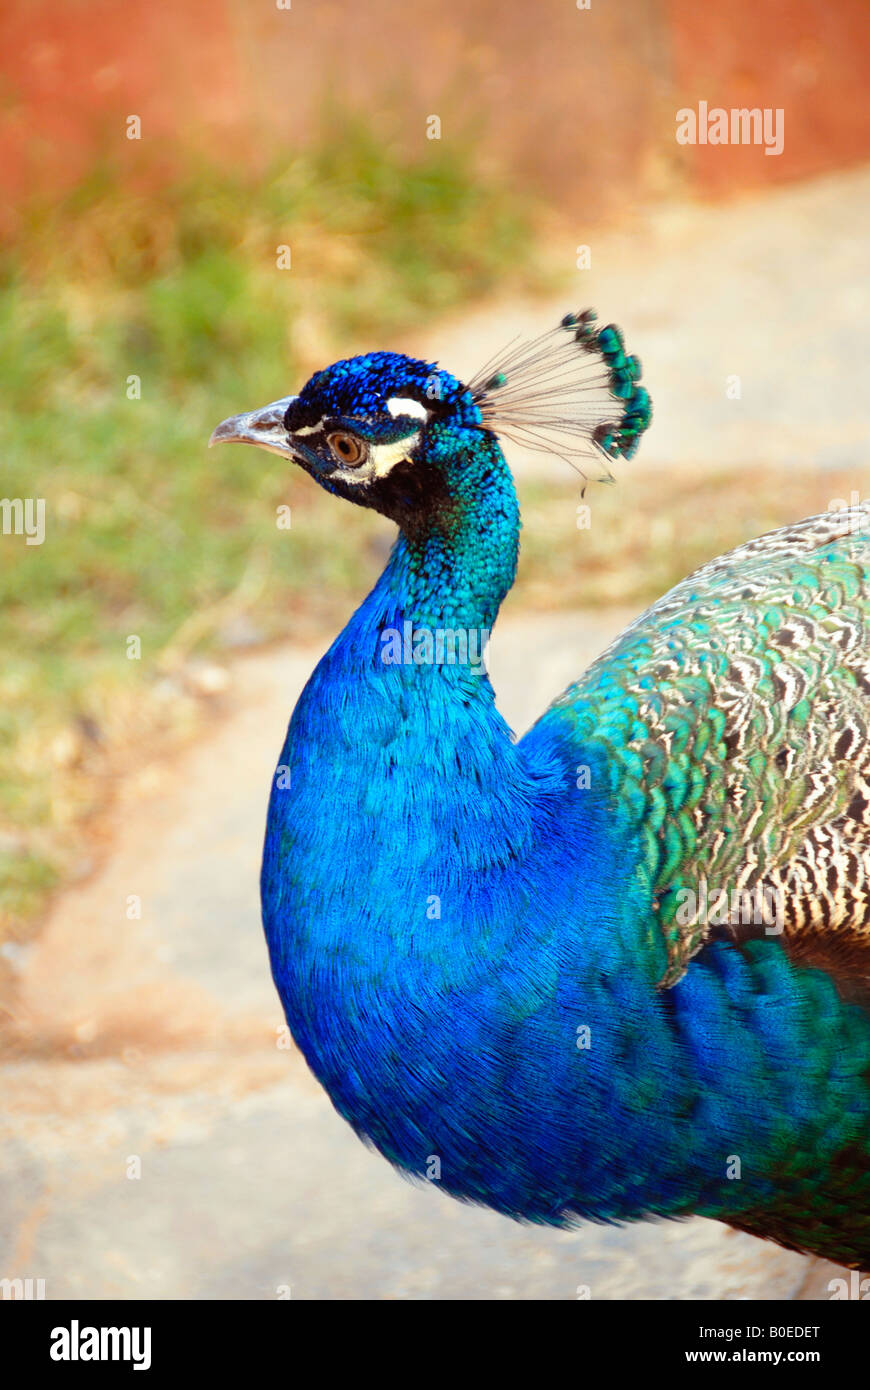 A peacock close up - Stock Image